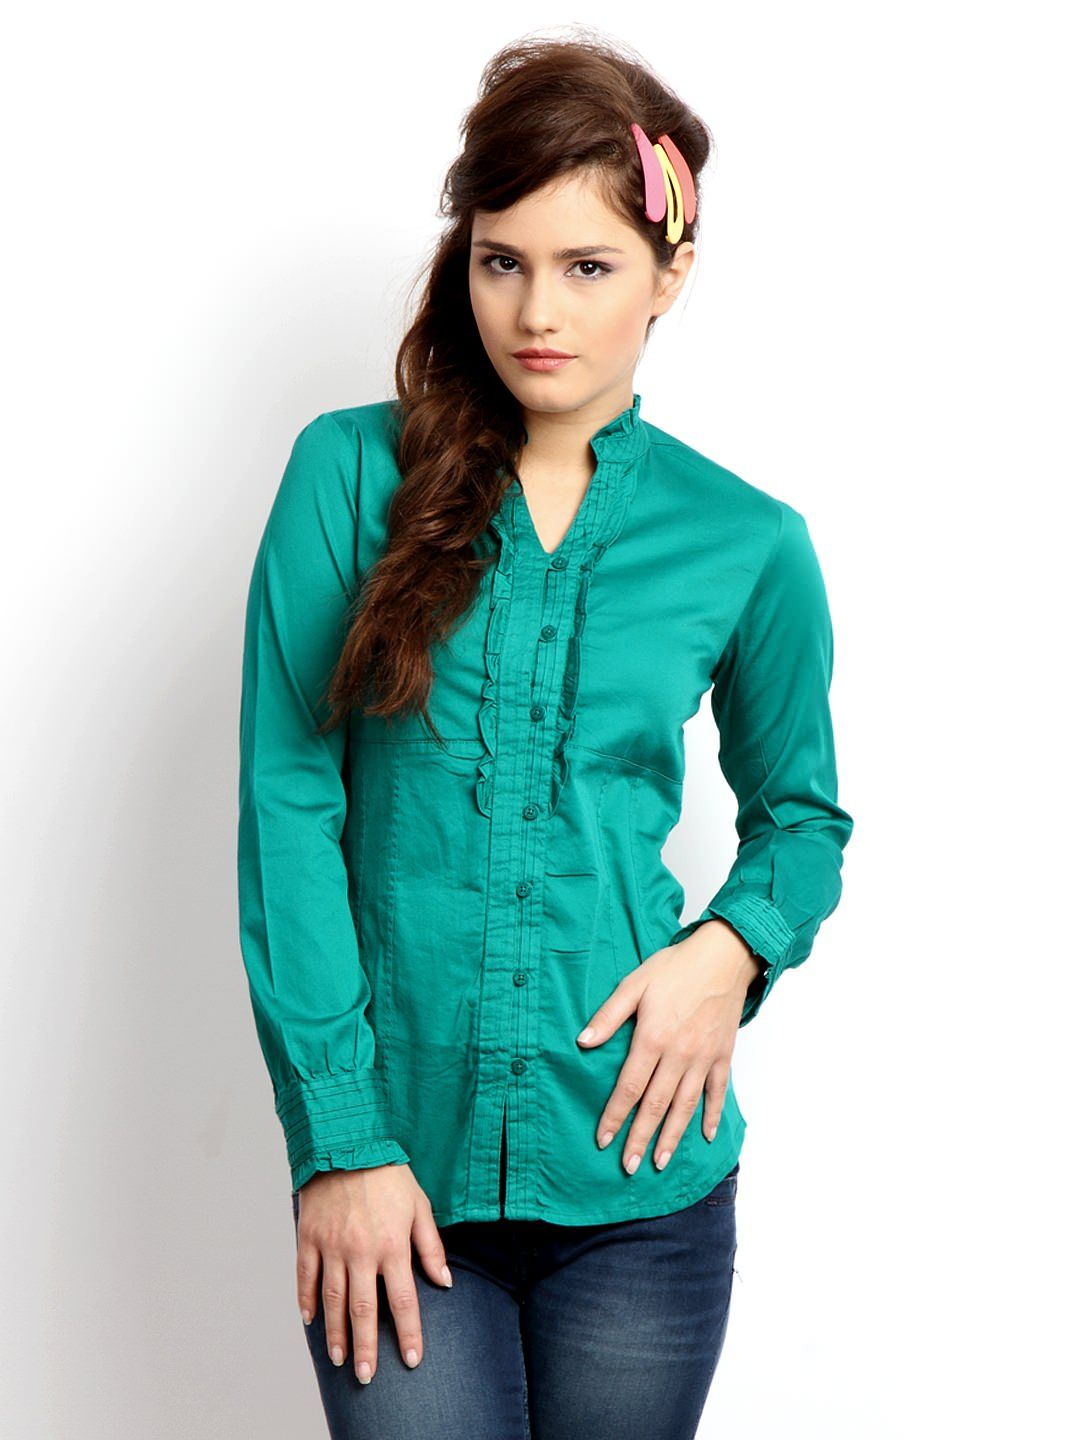 83024a5e3d41c6 Pepe-Jeans-Women-Green-Shirt Latest Ladies Tops and Shirts By Best Brands